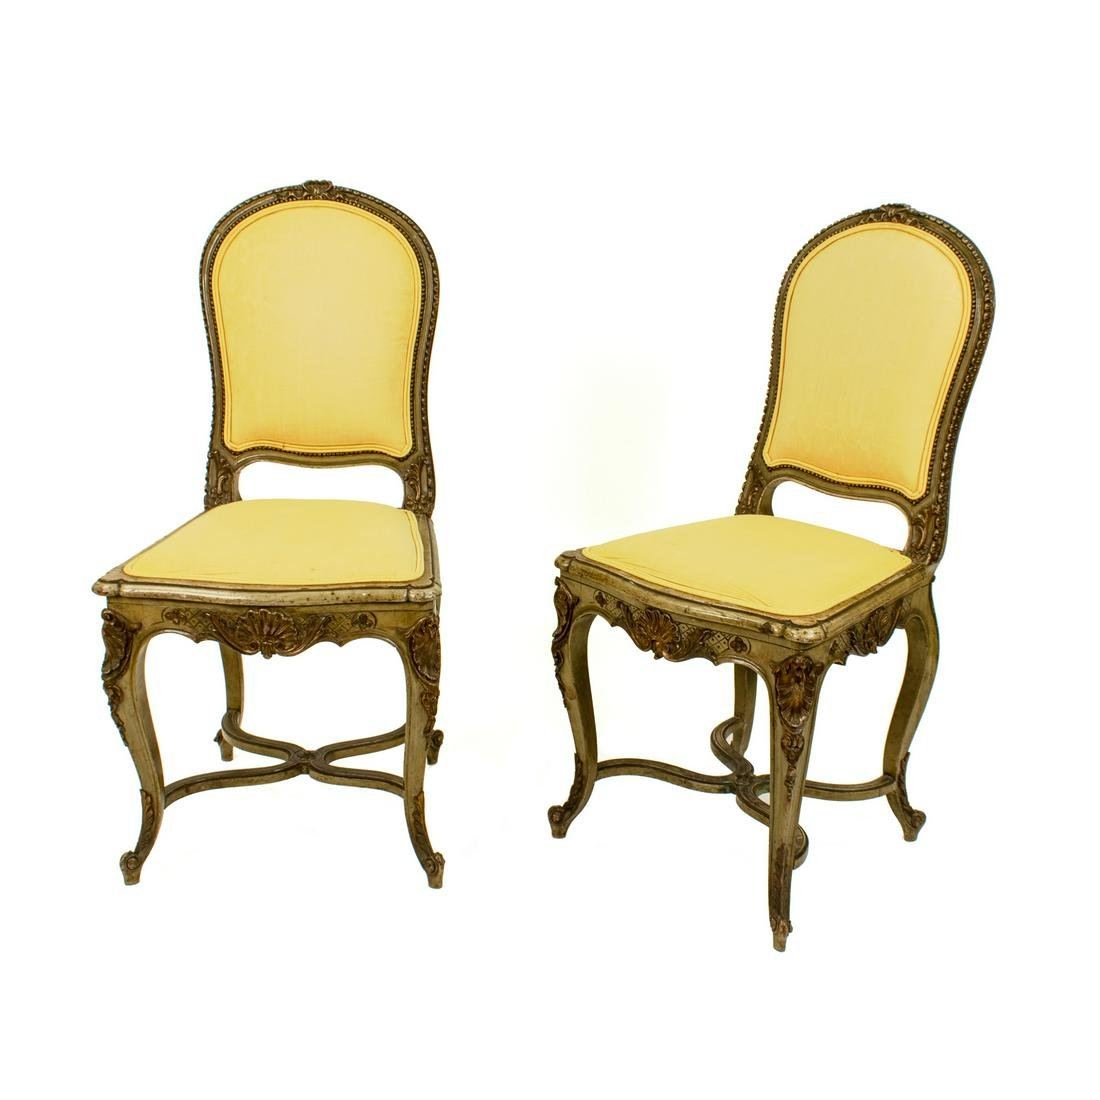 A Pair of French Louis XV Style Painted and Parcel Gilt